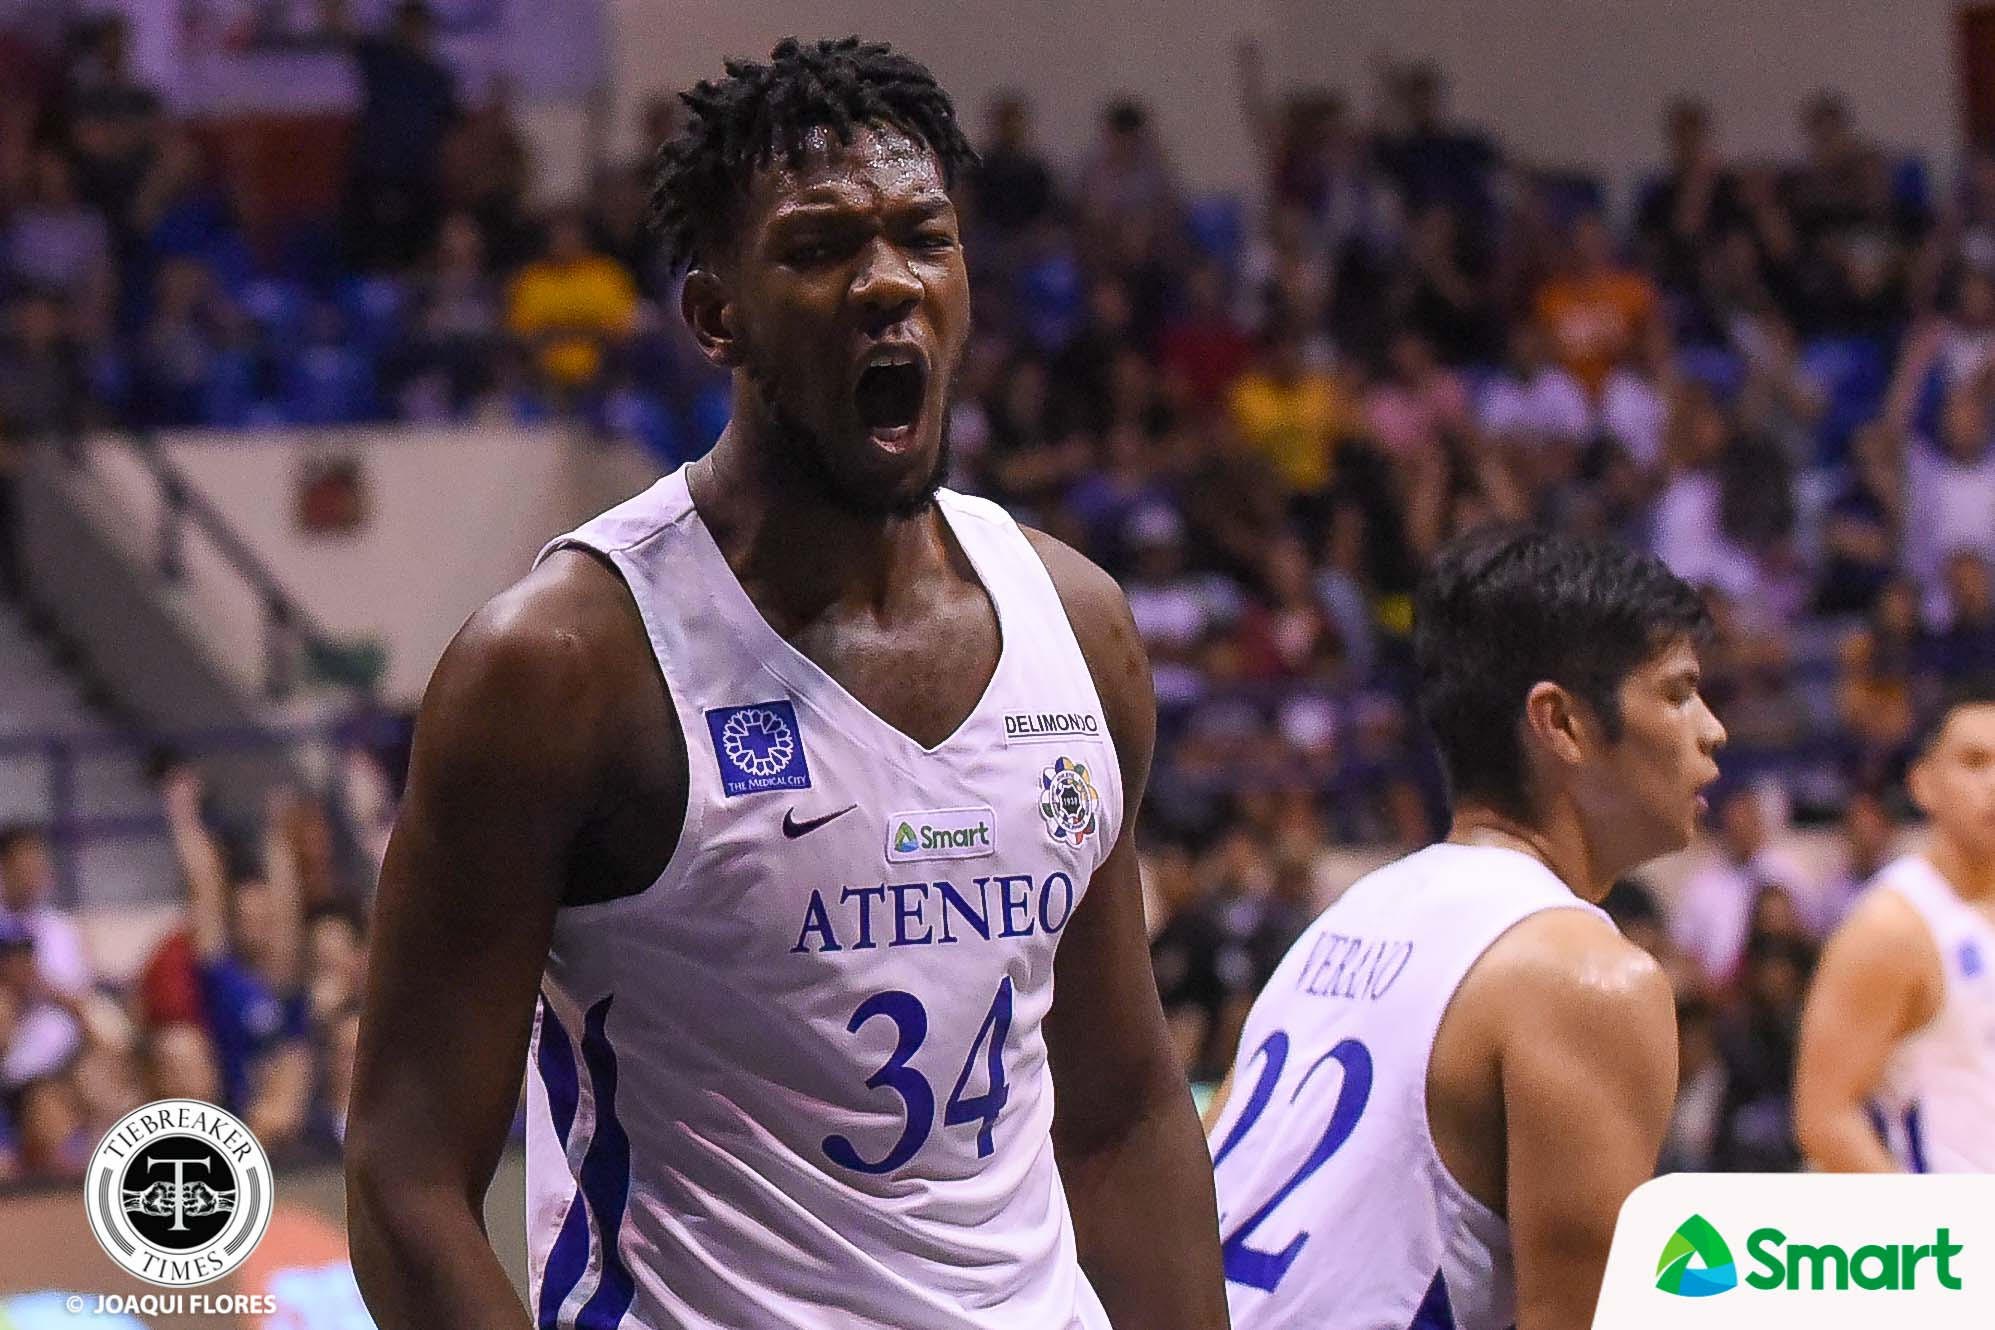 Tiebreaker Times Ateneo much tougher this time around with Kouame, says Olsen Racela ADMU Basketball FEU News UAAP  UAAP Season 81 Men's Basketball UAAP Season 81 Tab Baldwin Olsen Racela FEU Men's Basketball Ateneo Men's Basketball Angelo Kouame